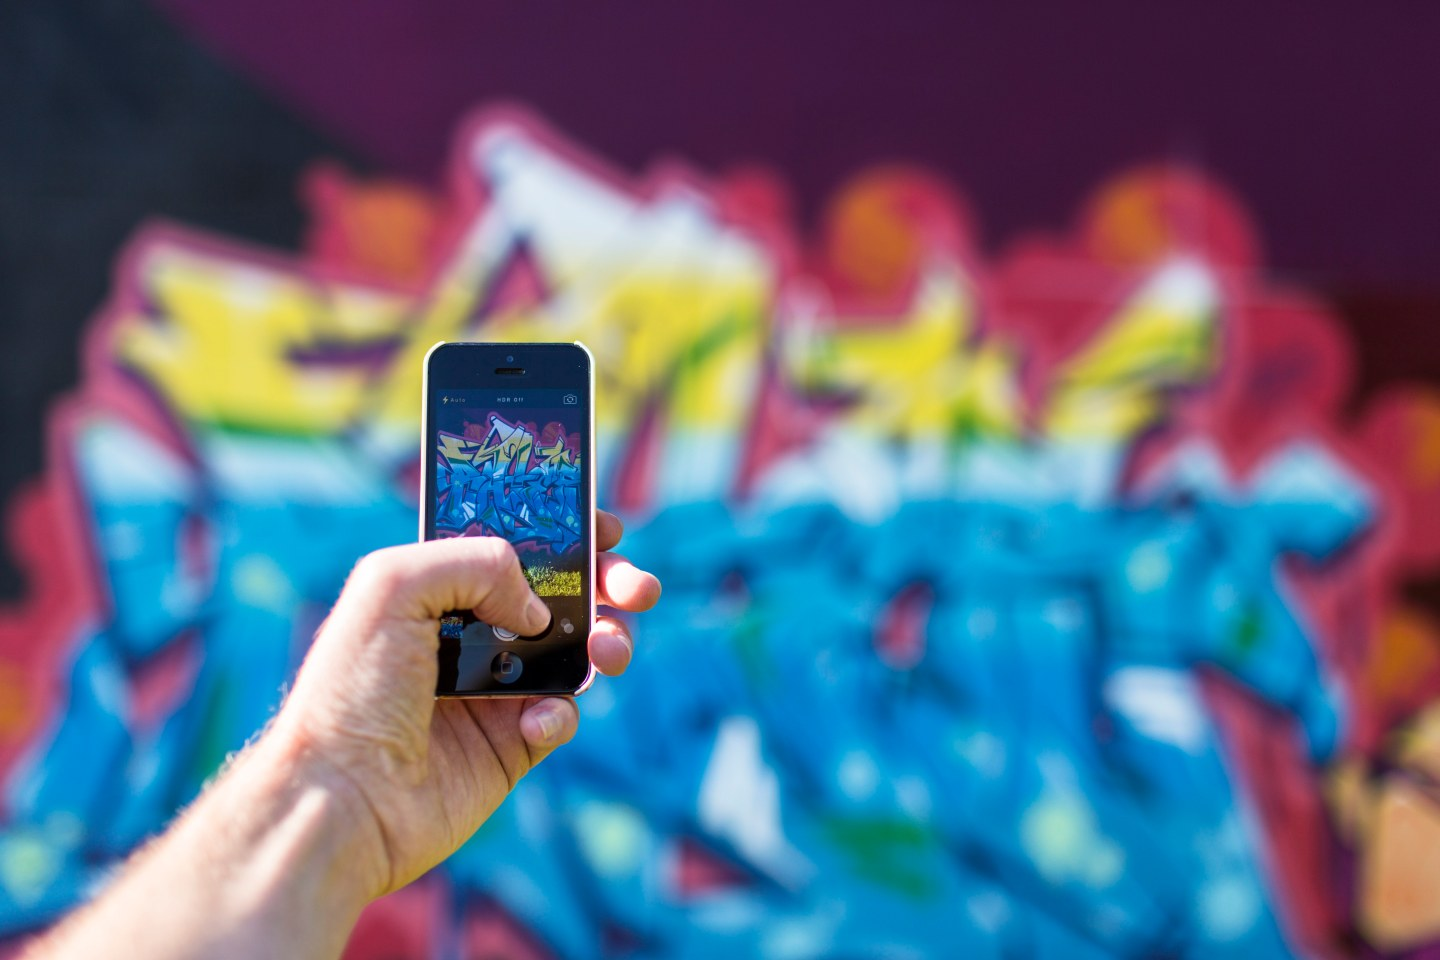 https://www.pexels.com/photo/iphone-smartphone-taking-photo-graffiti-4641/